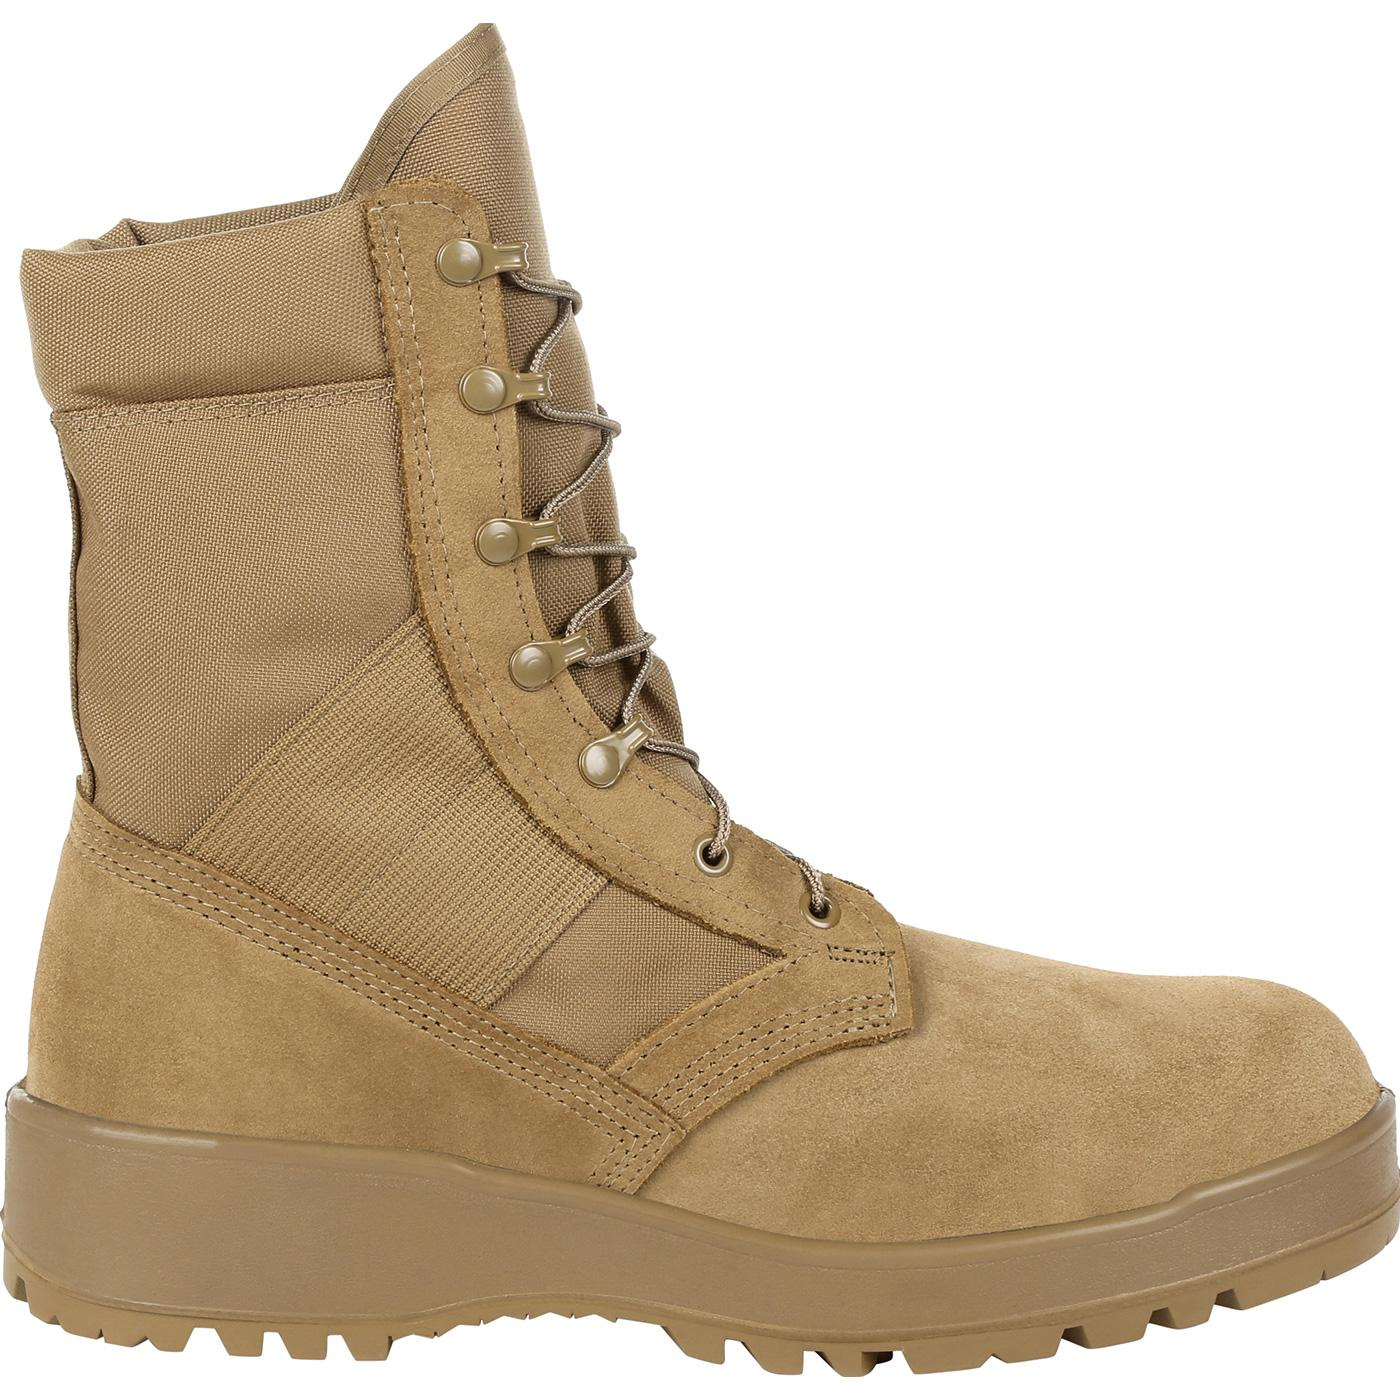 Rocky Entry Level Hot Weather Coyote Brown Military Boot